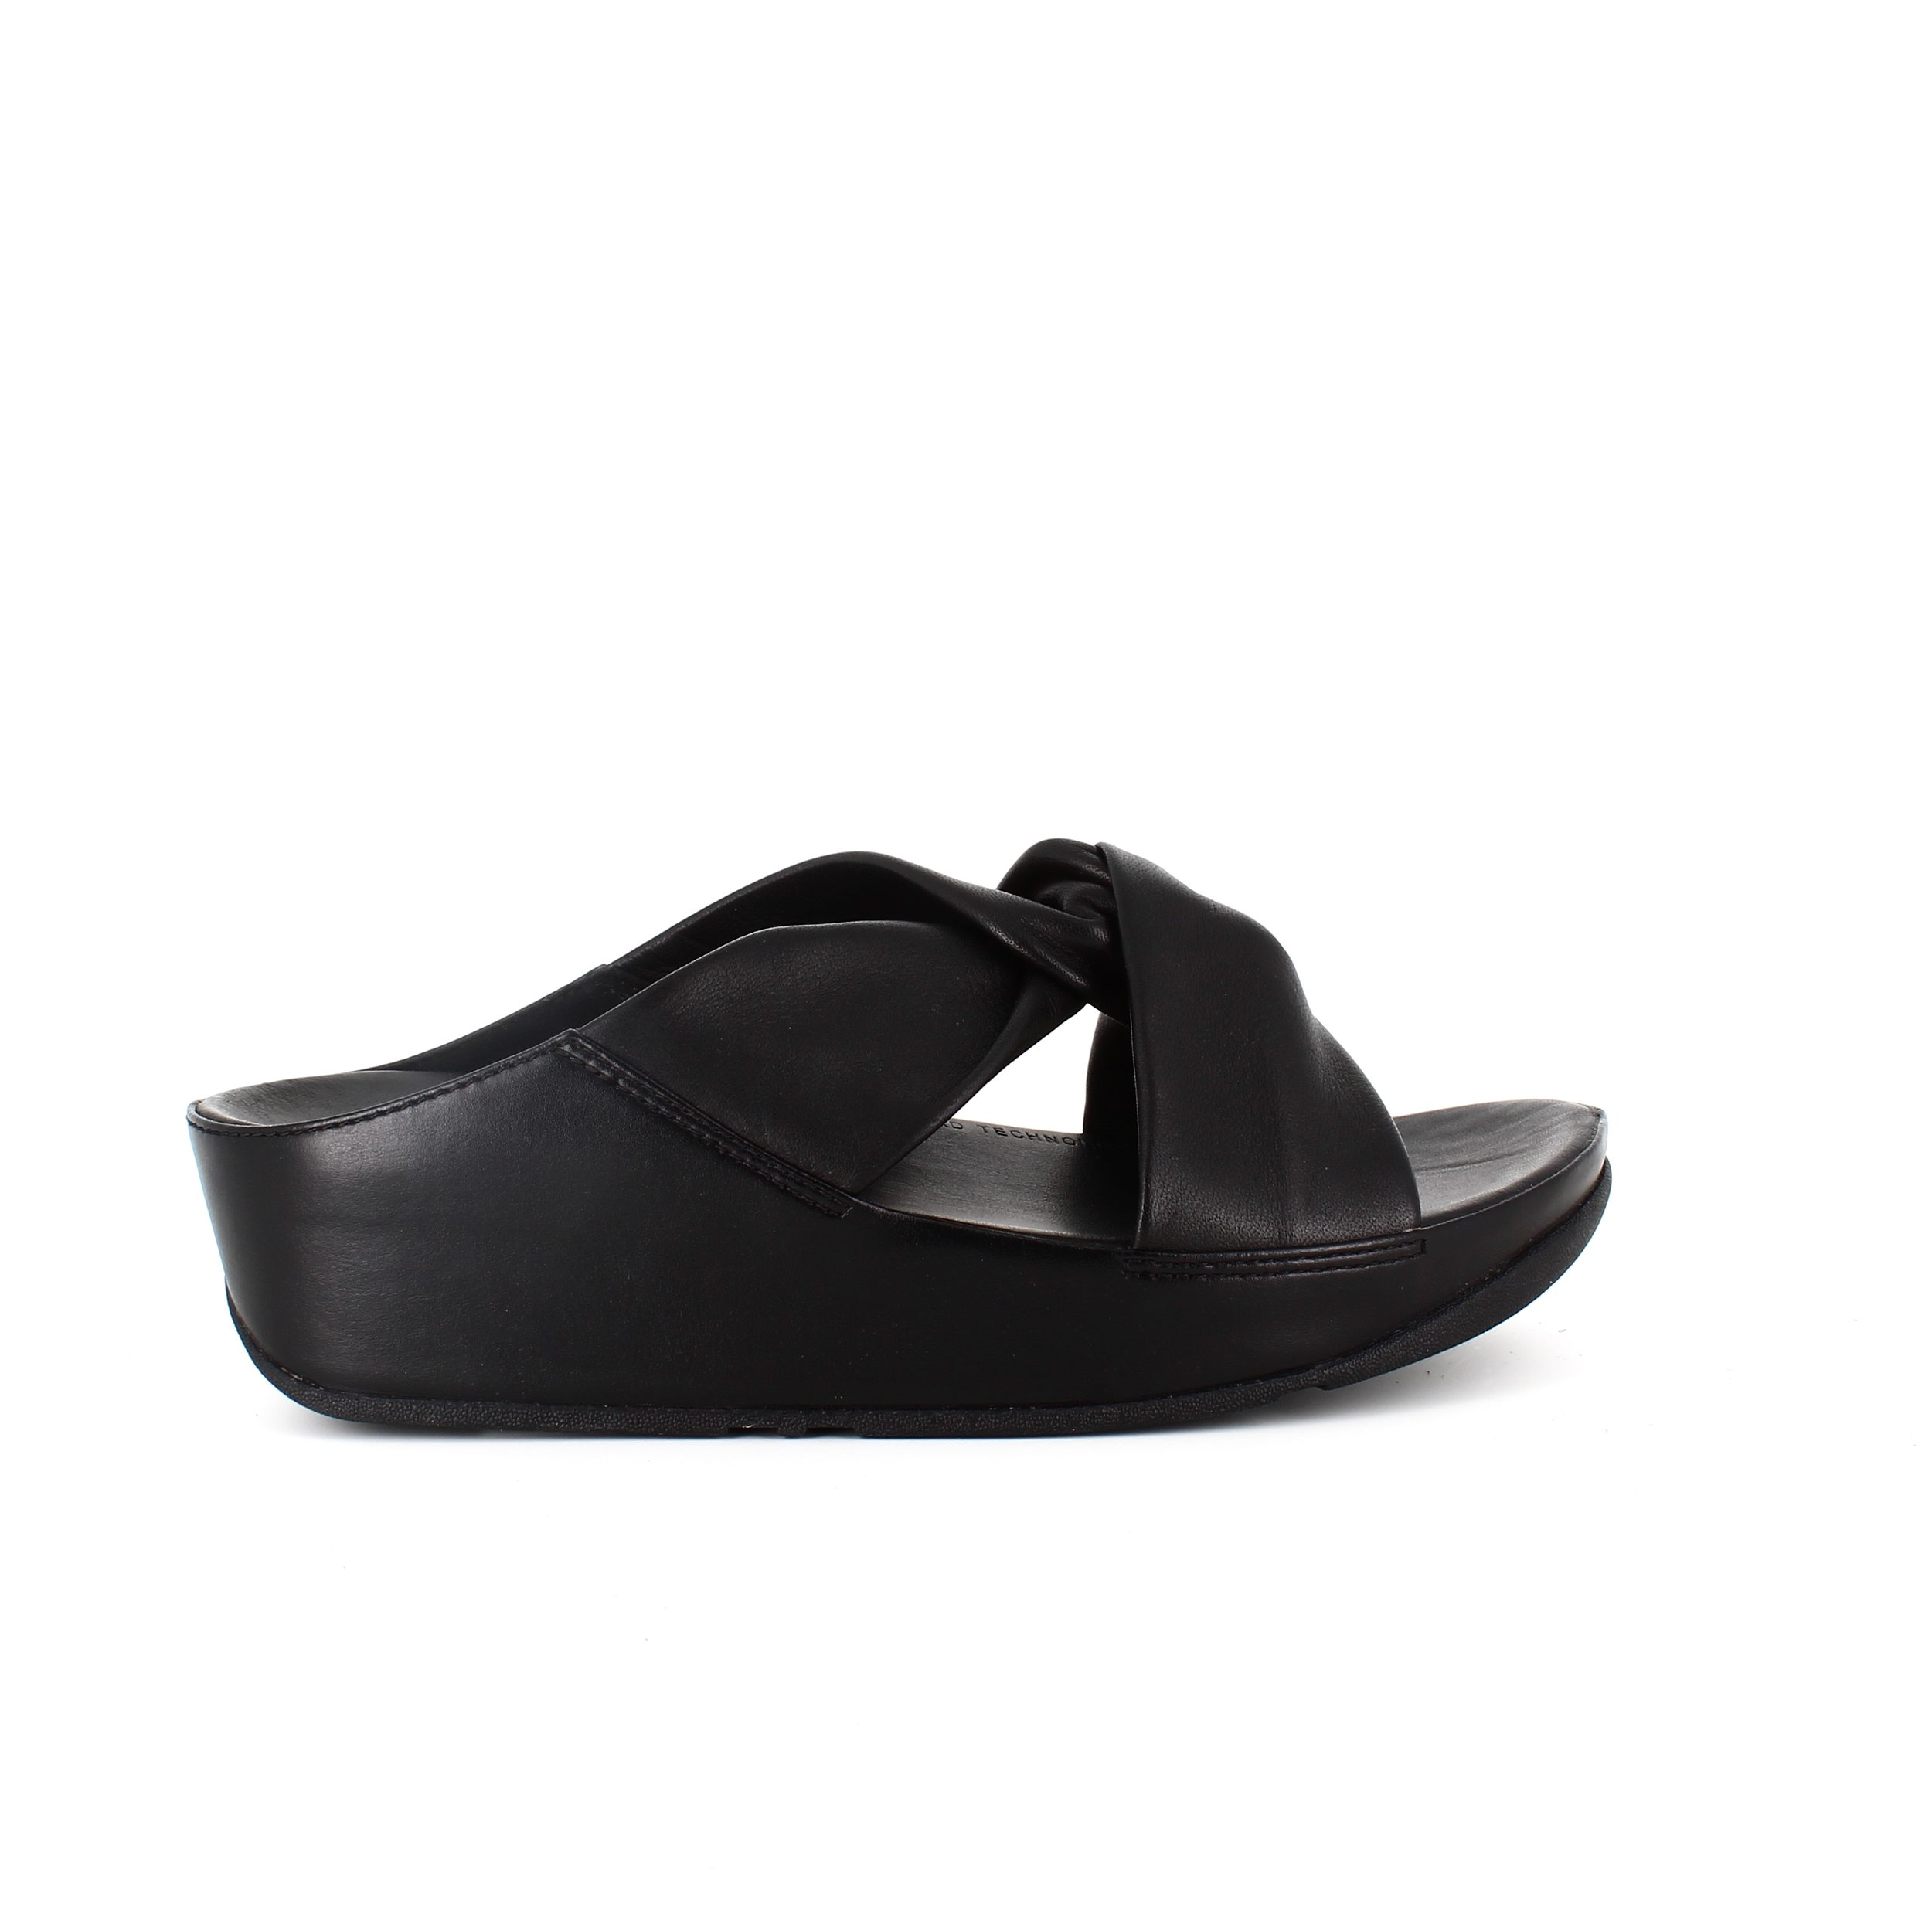 Image of   Fitflop læder sandal twiss slide - 38